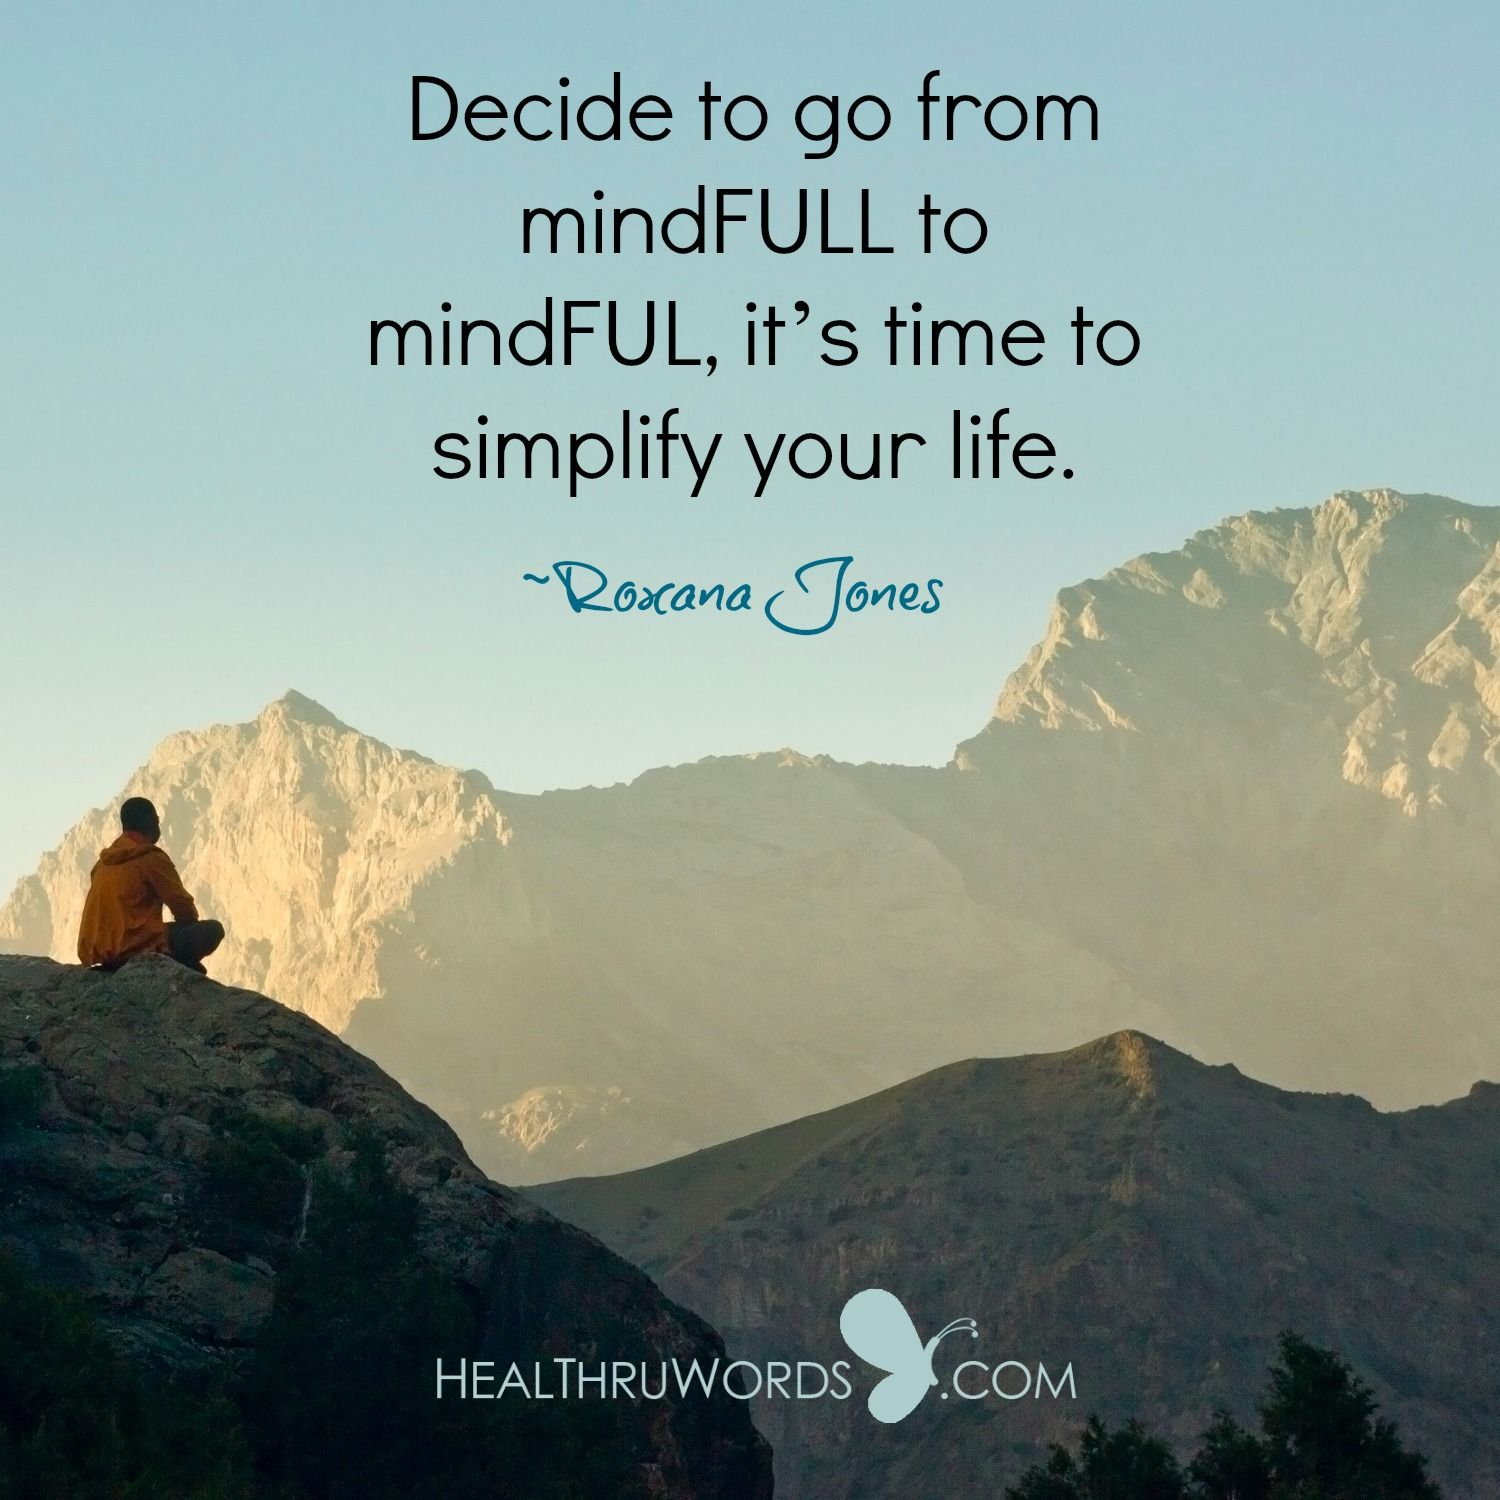 Simplify Life Quotes Quote Of The Day Simplifying Life  Thoughts  Pinterest